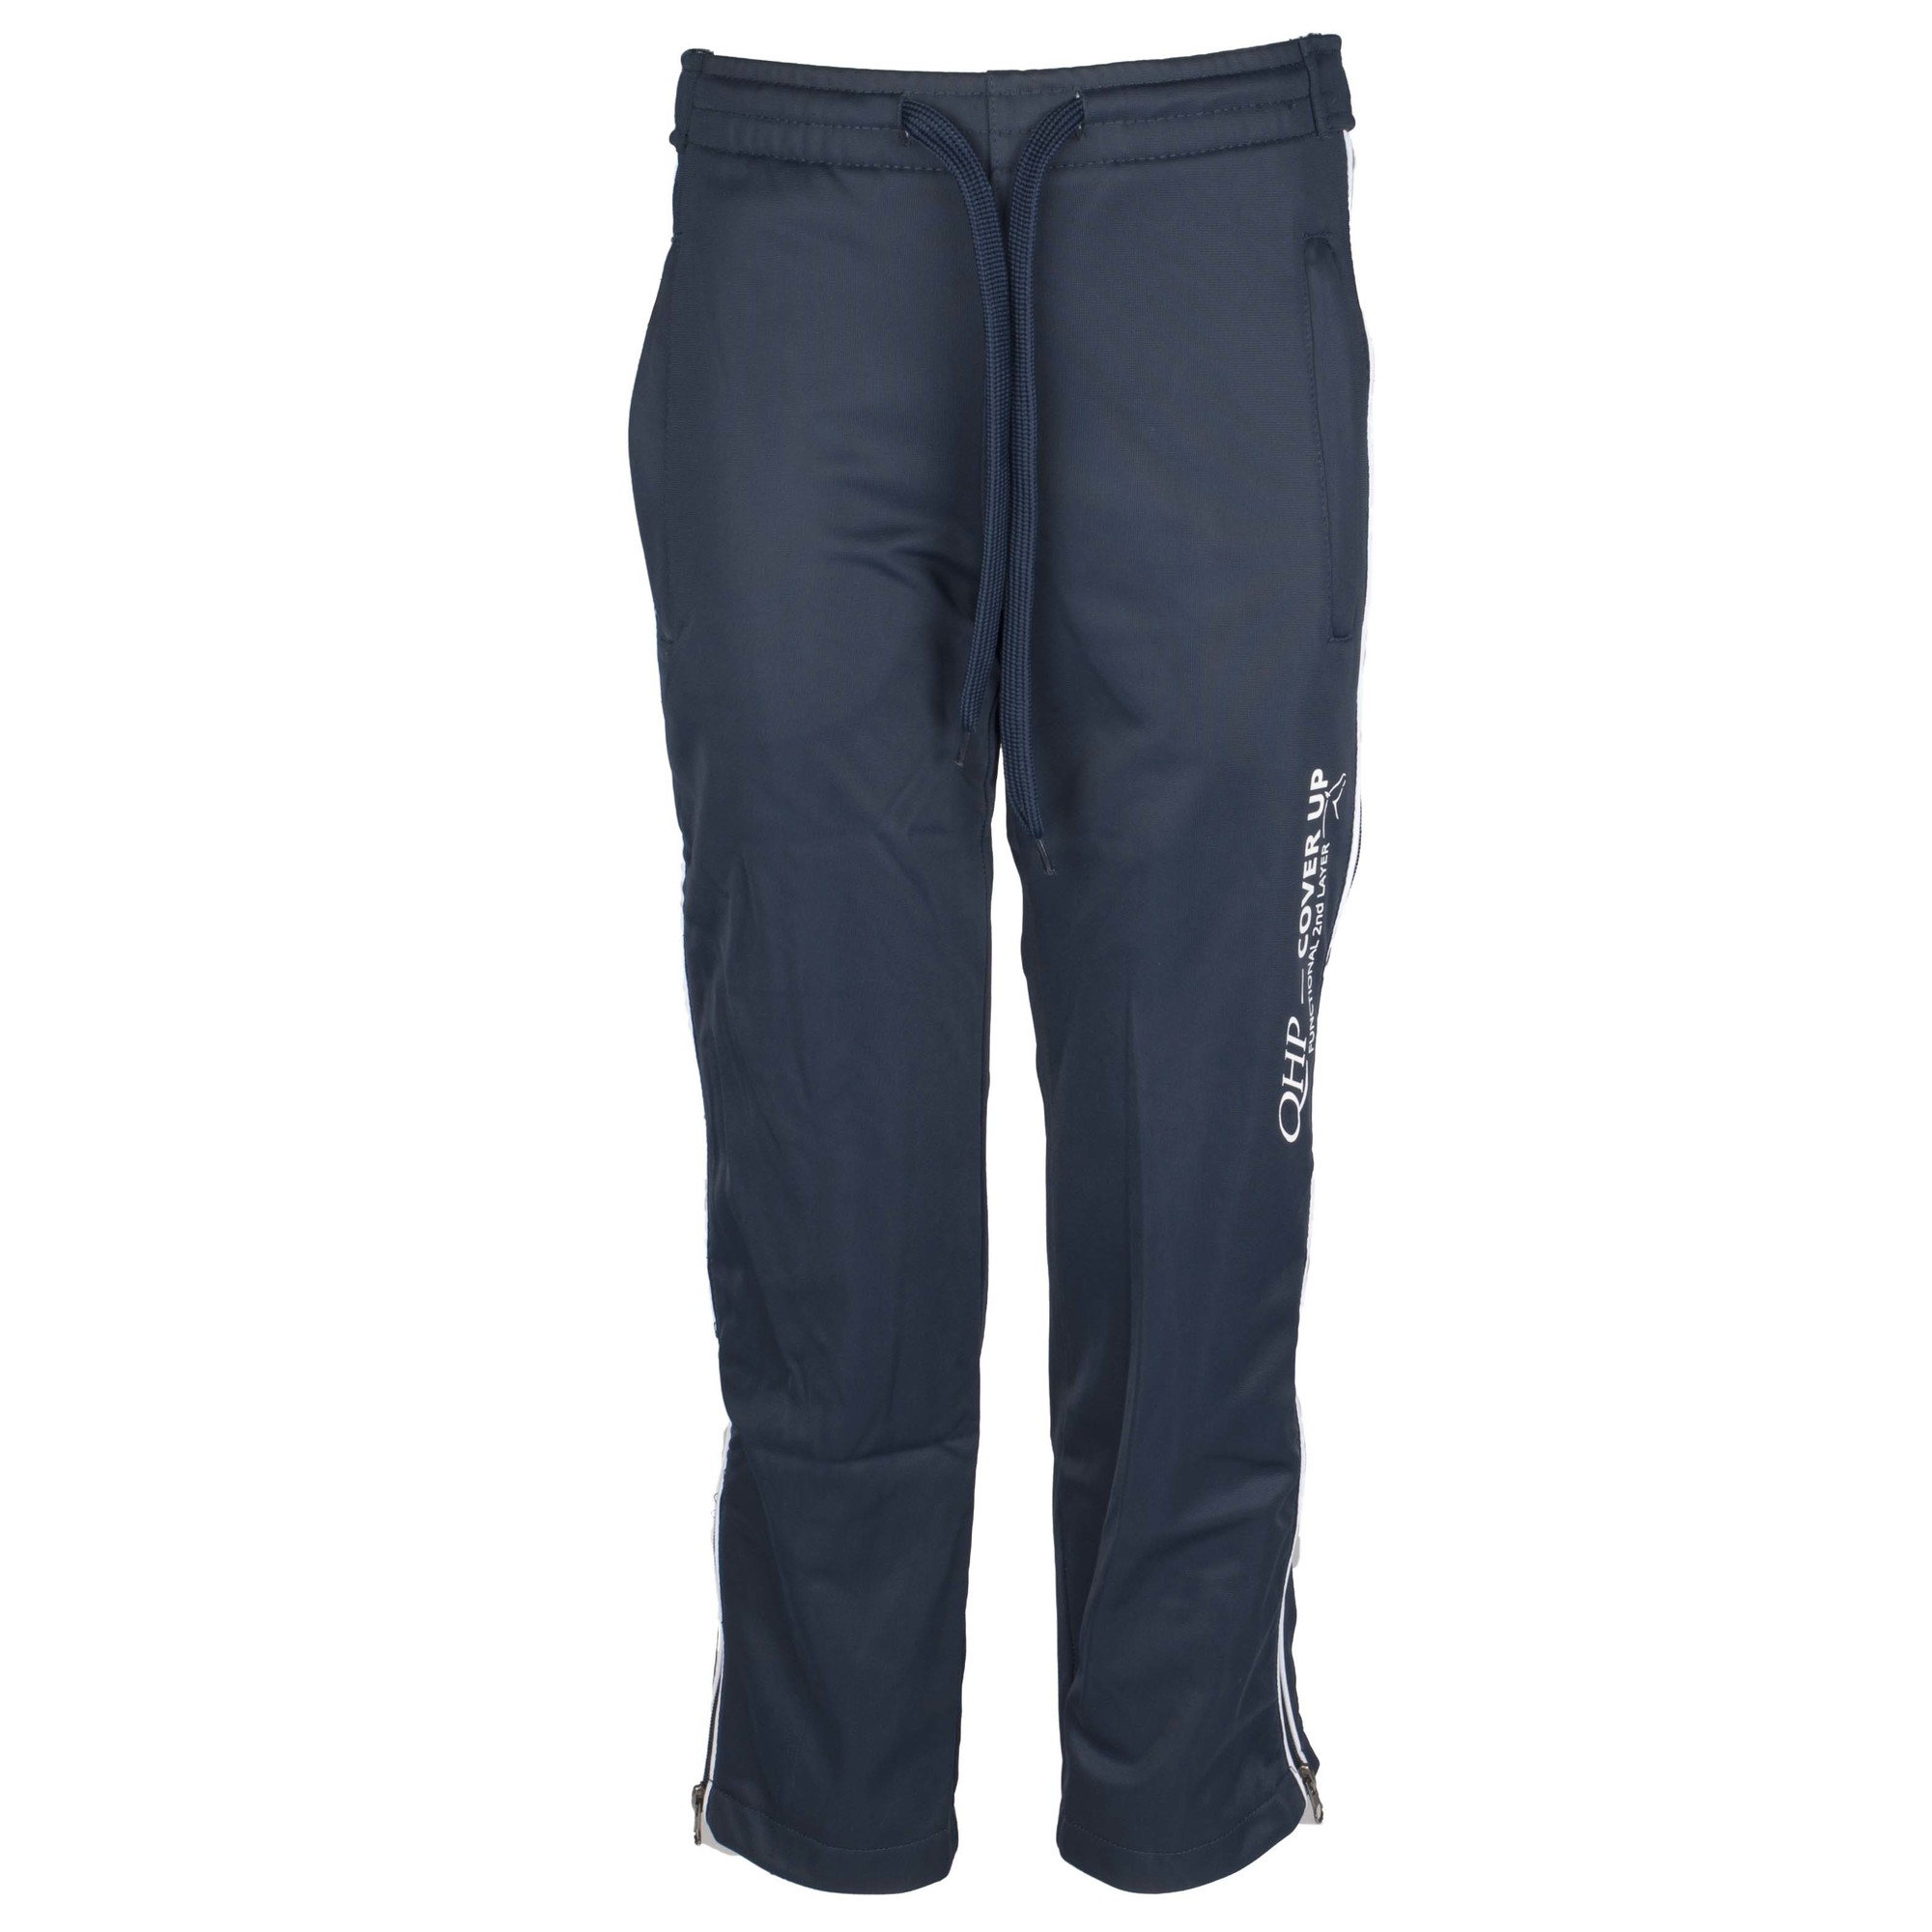 QHP kinder Trainingsbroek cover up donkerblauw maat:s